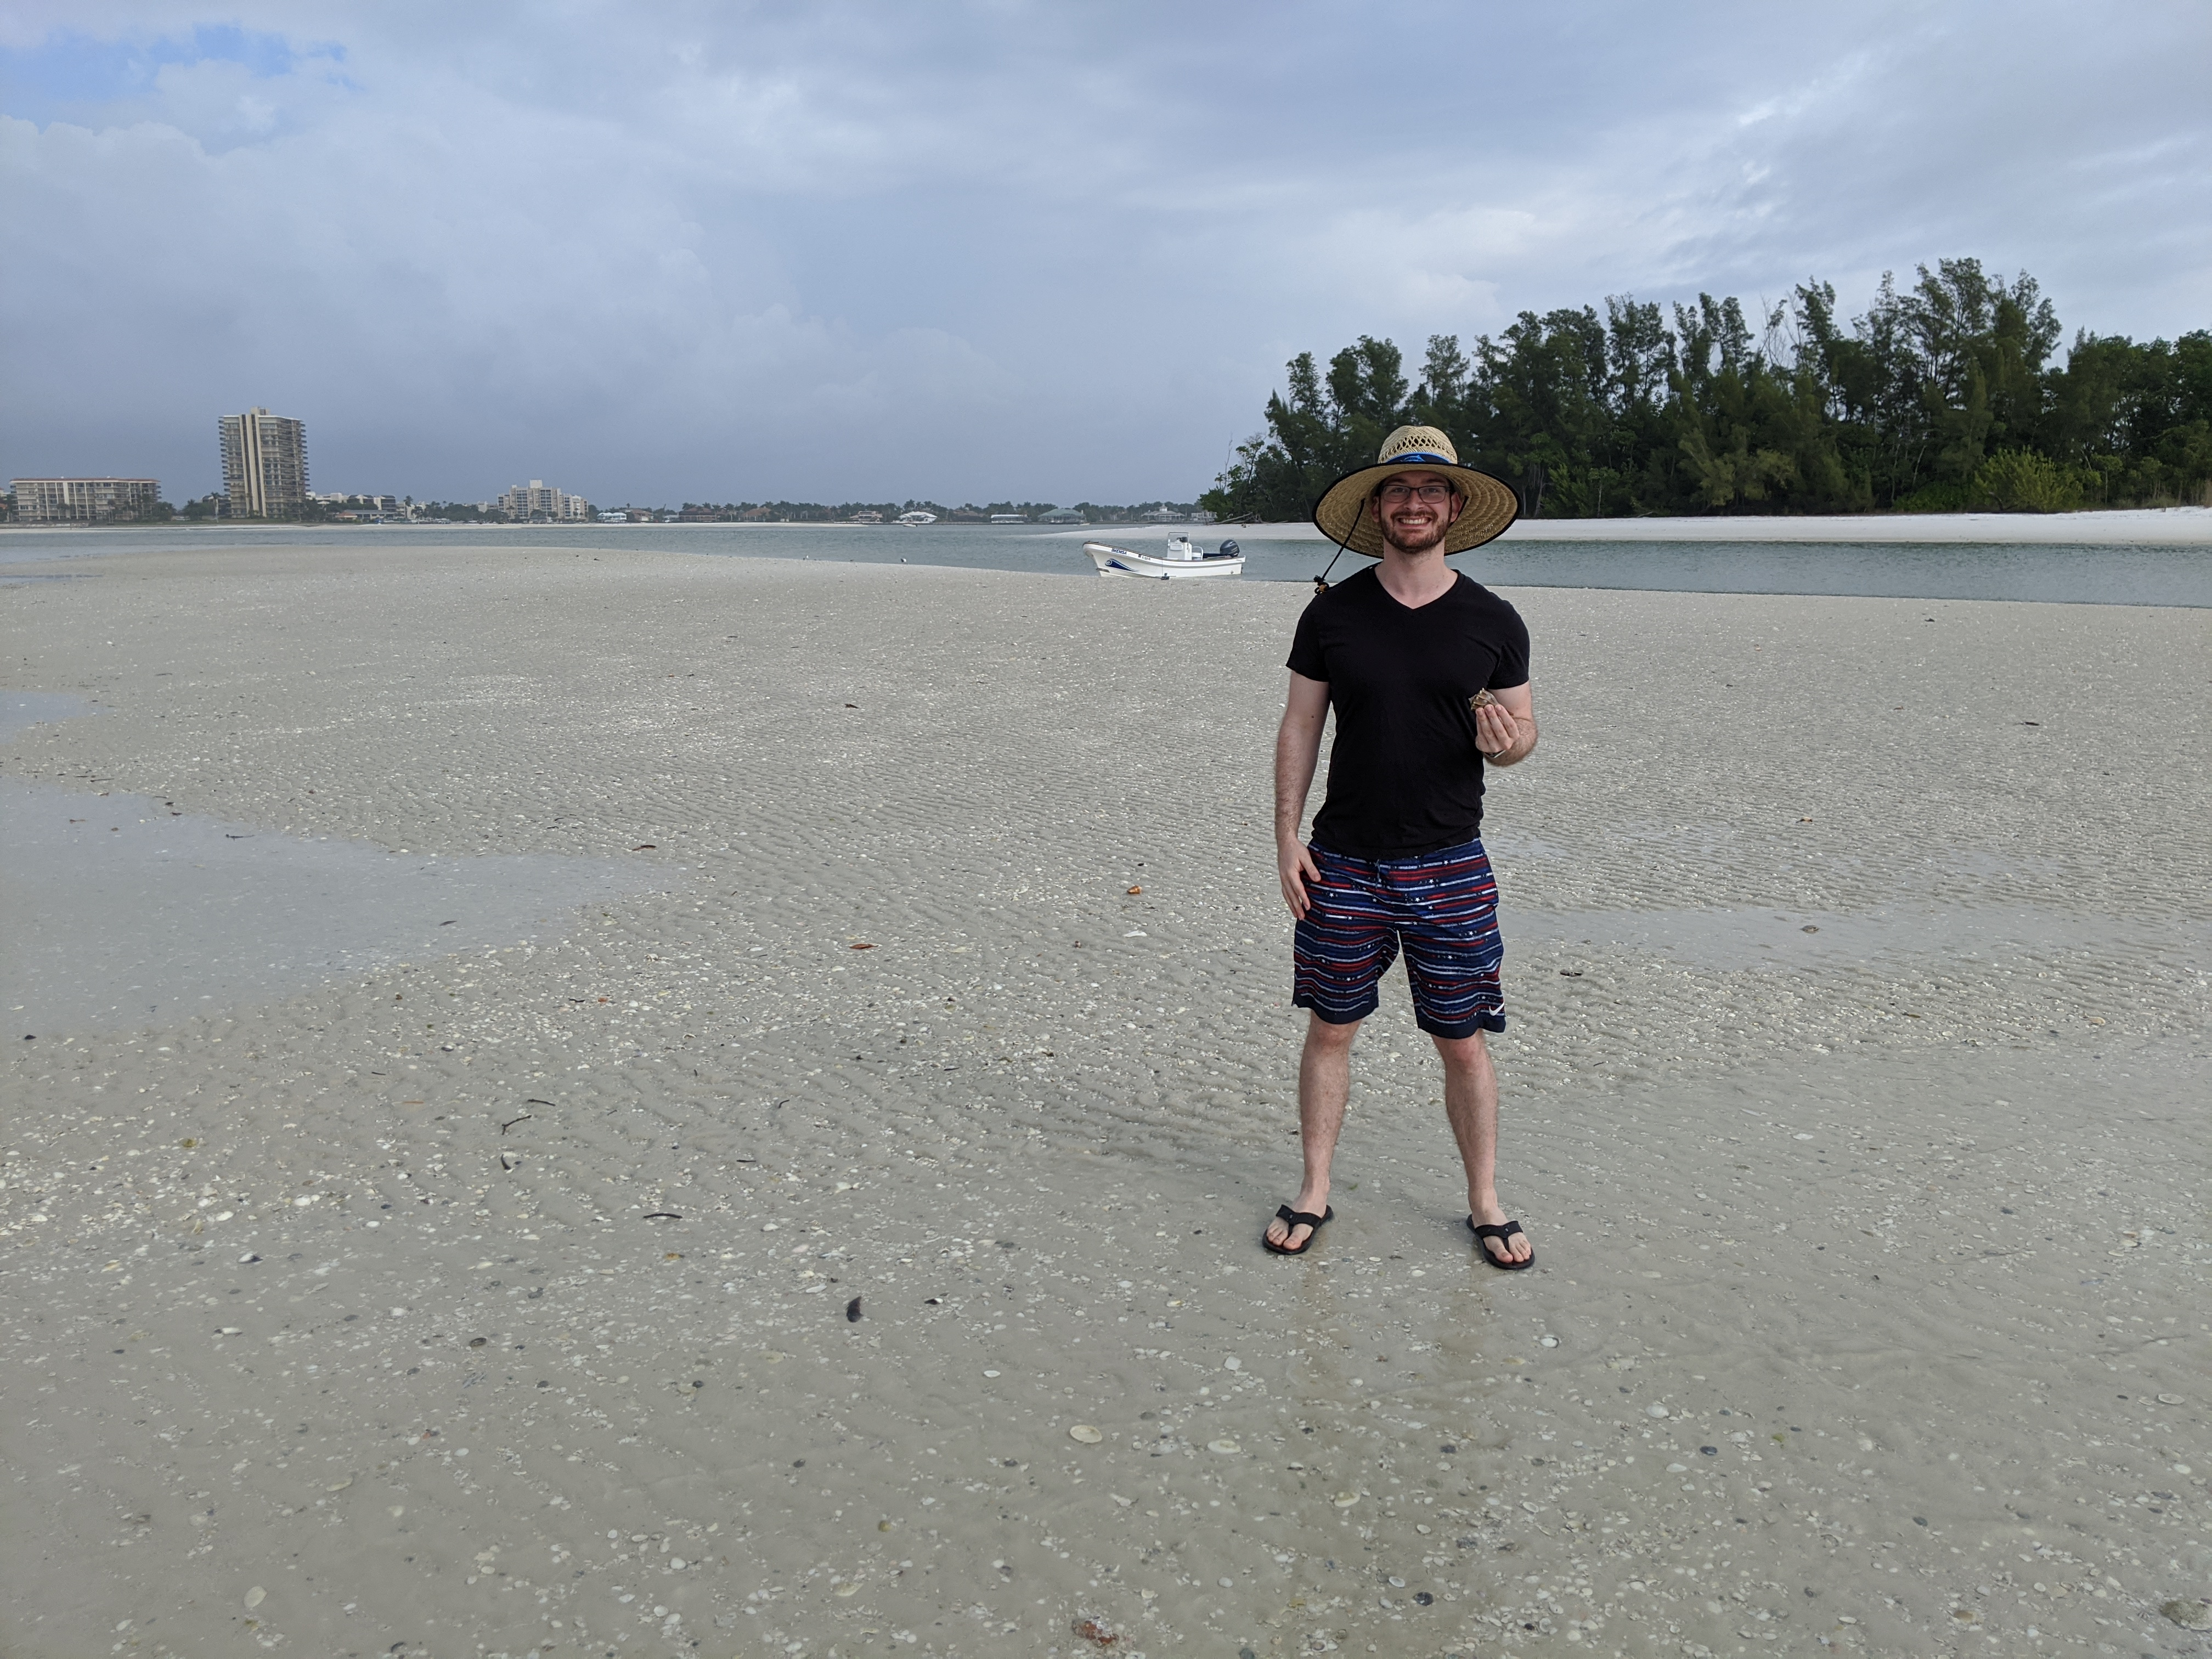 Shelling in the Ten Thousand Islands